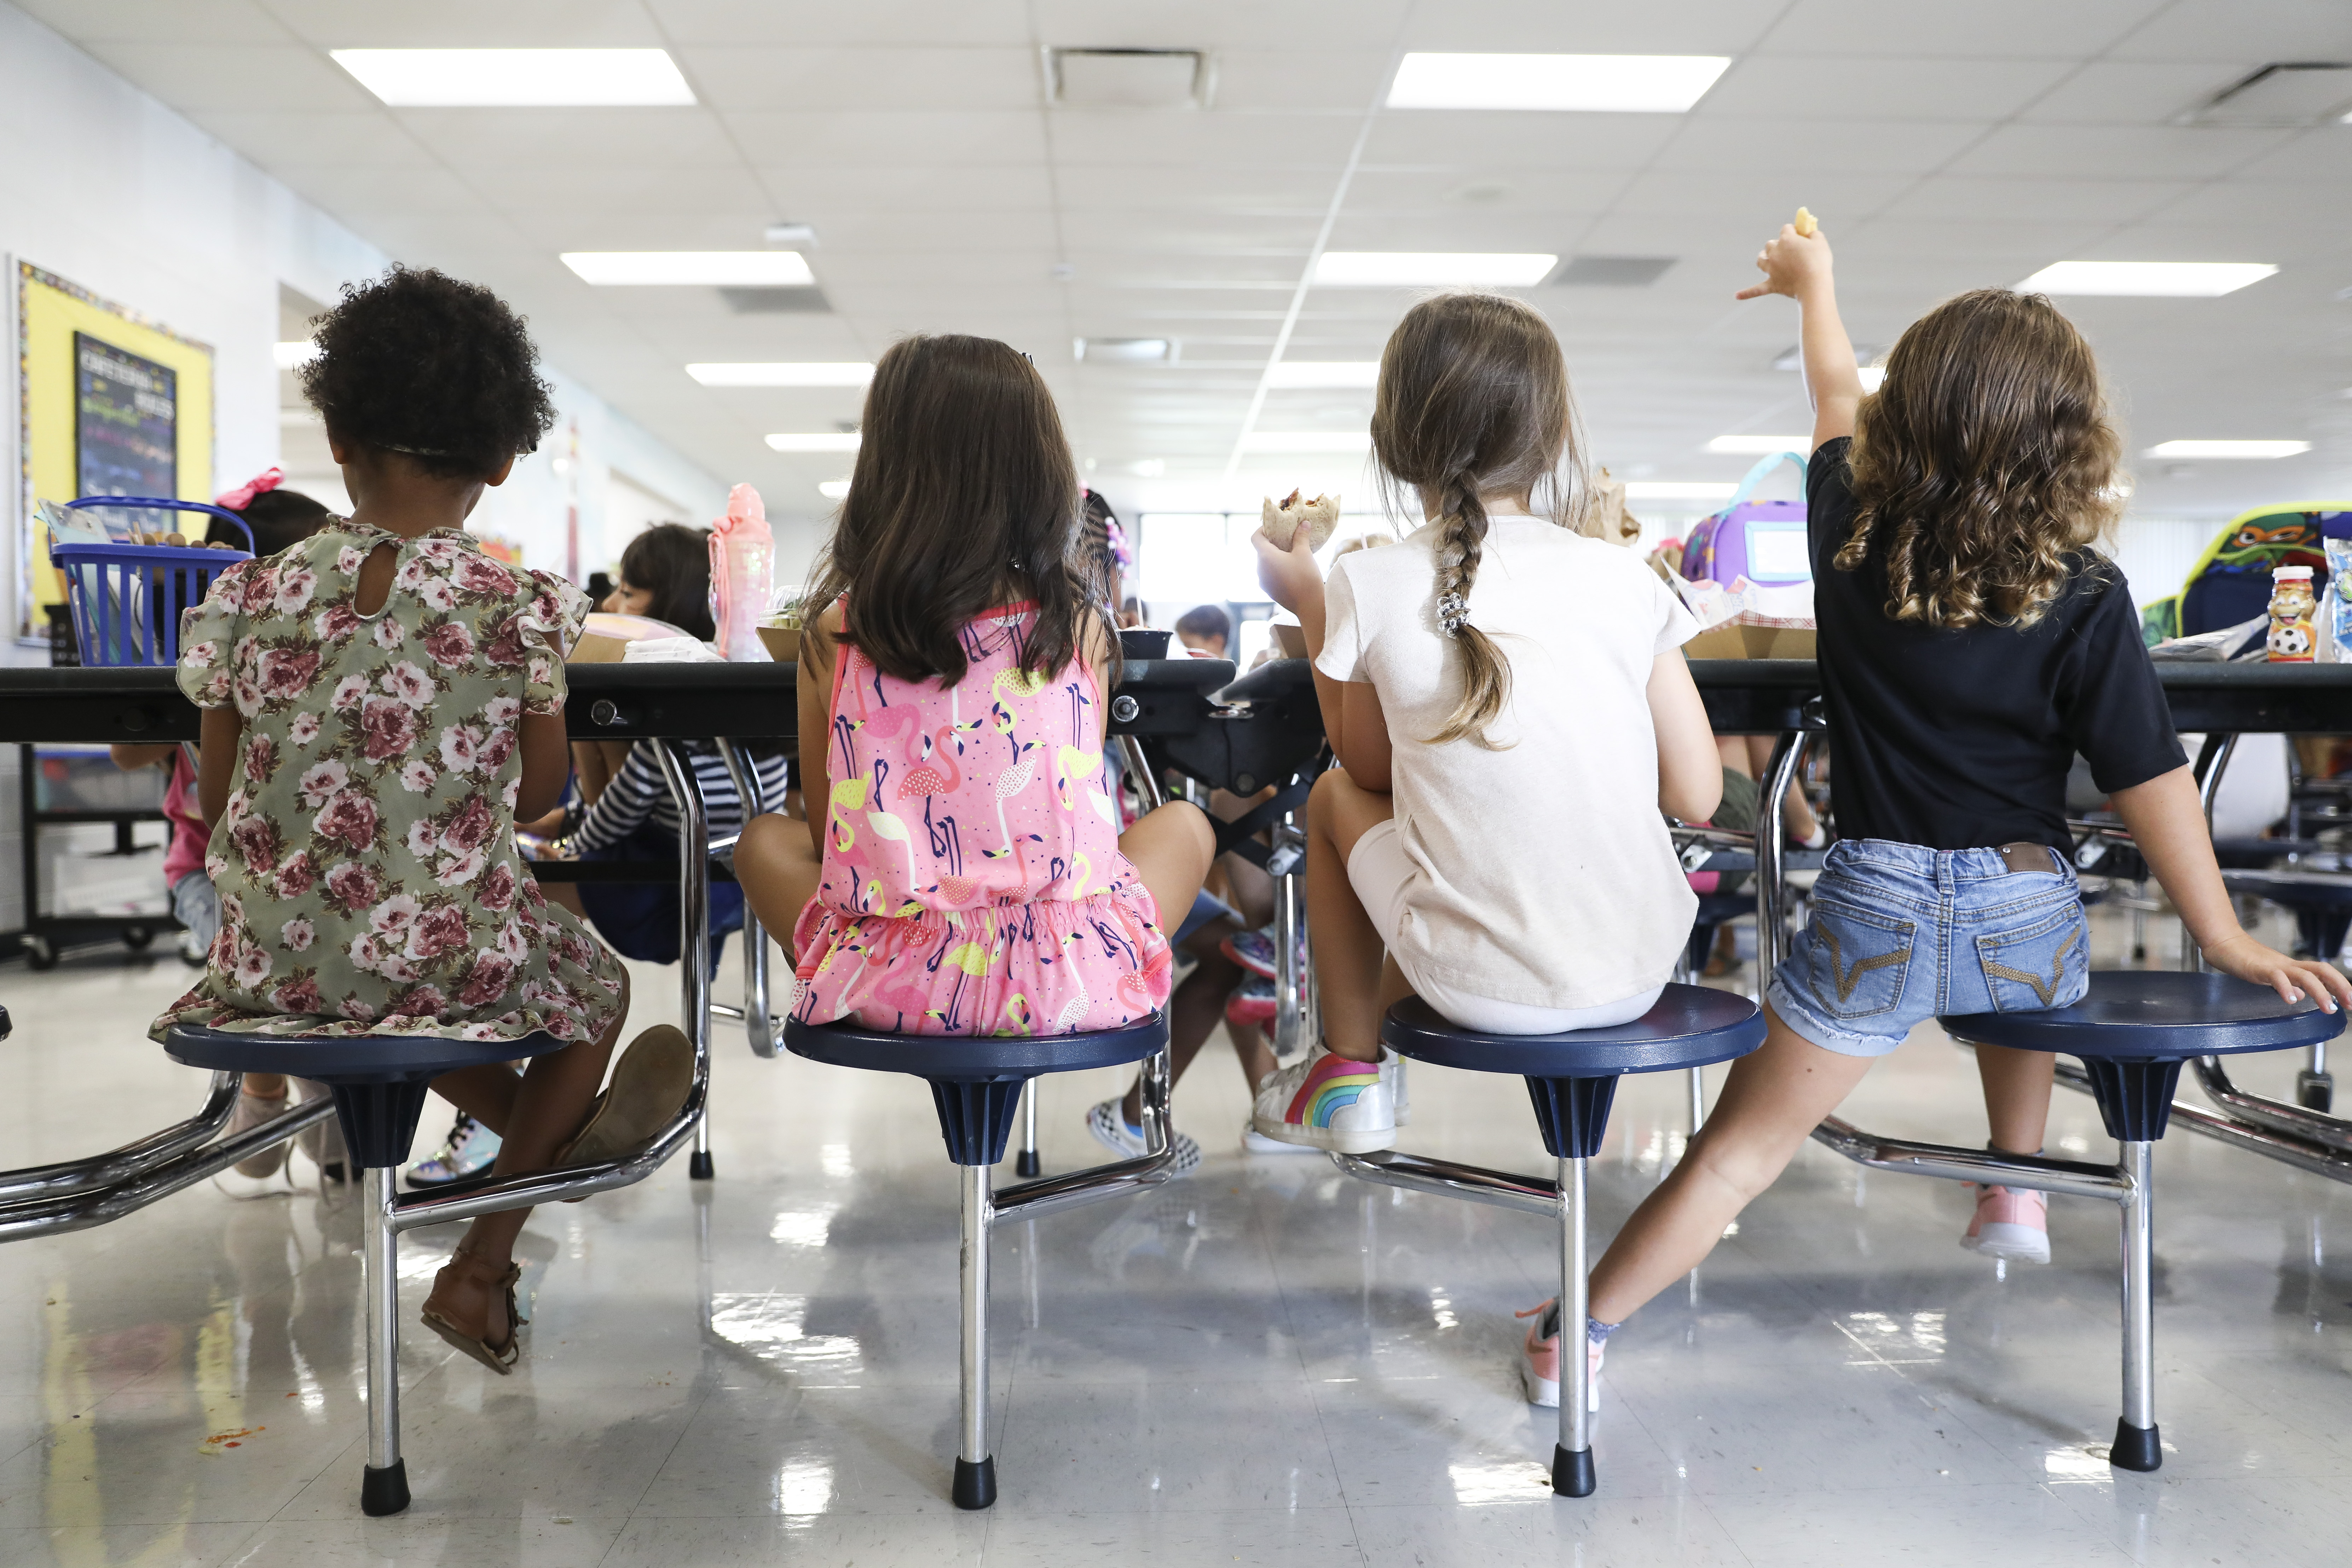 Four girls sitting at cafeteria table.